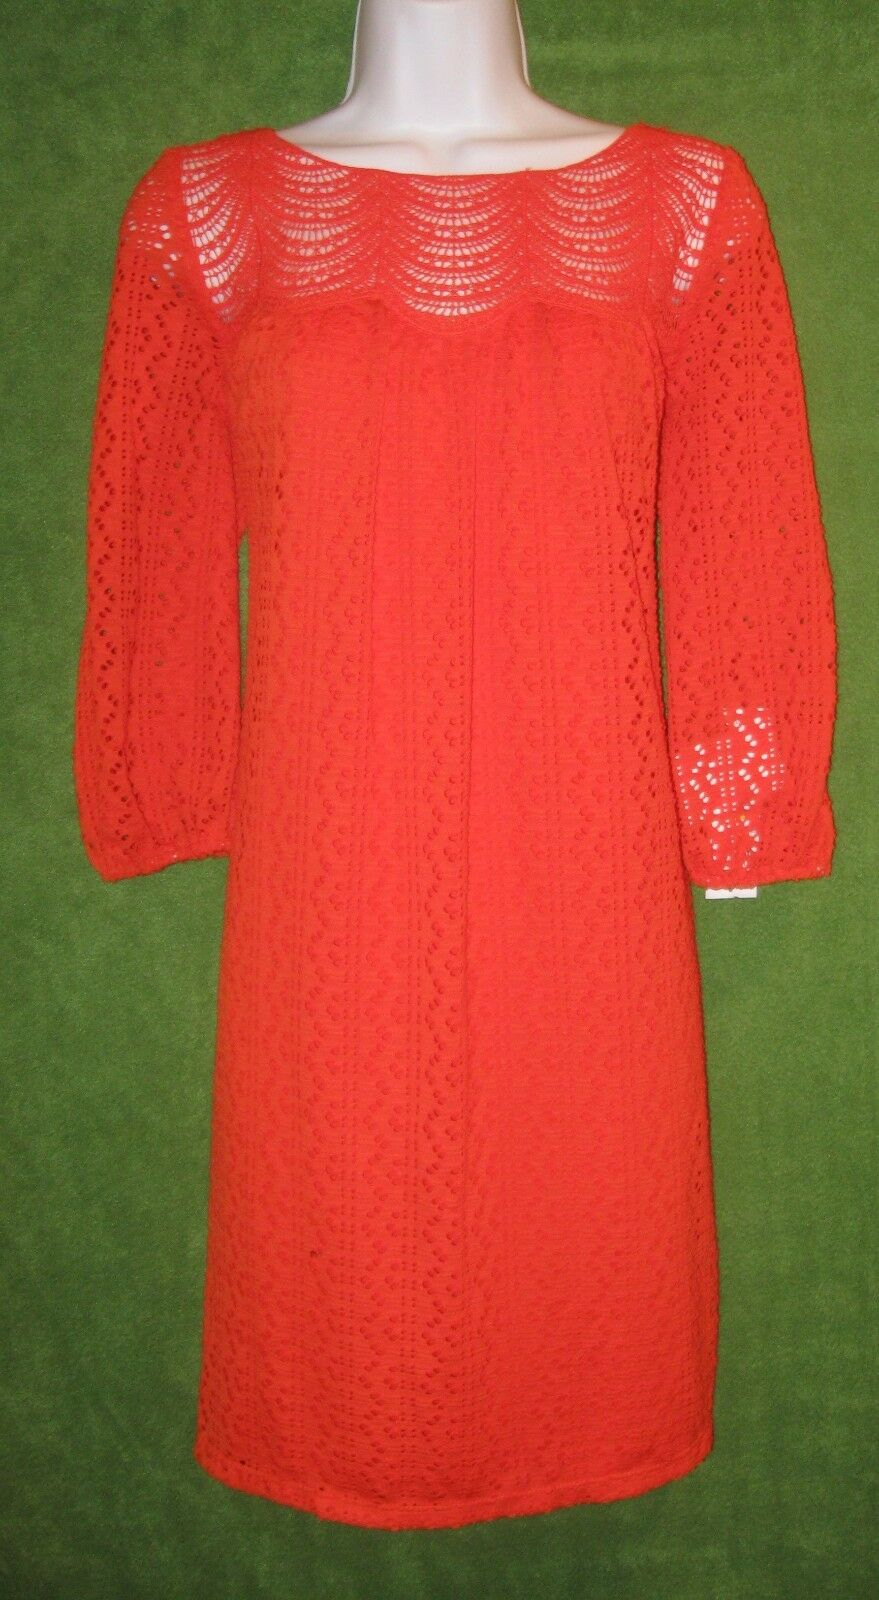 London Times orange Eyelet Crochet Shift Work Social Dress 4